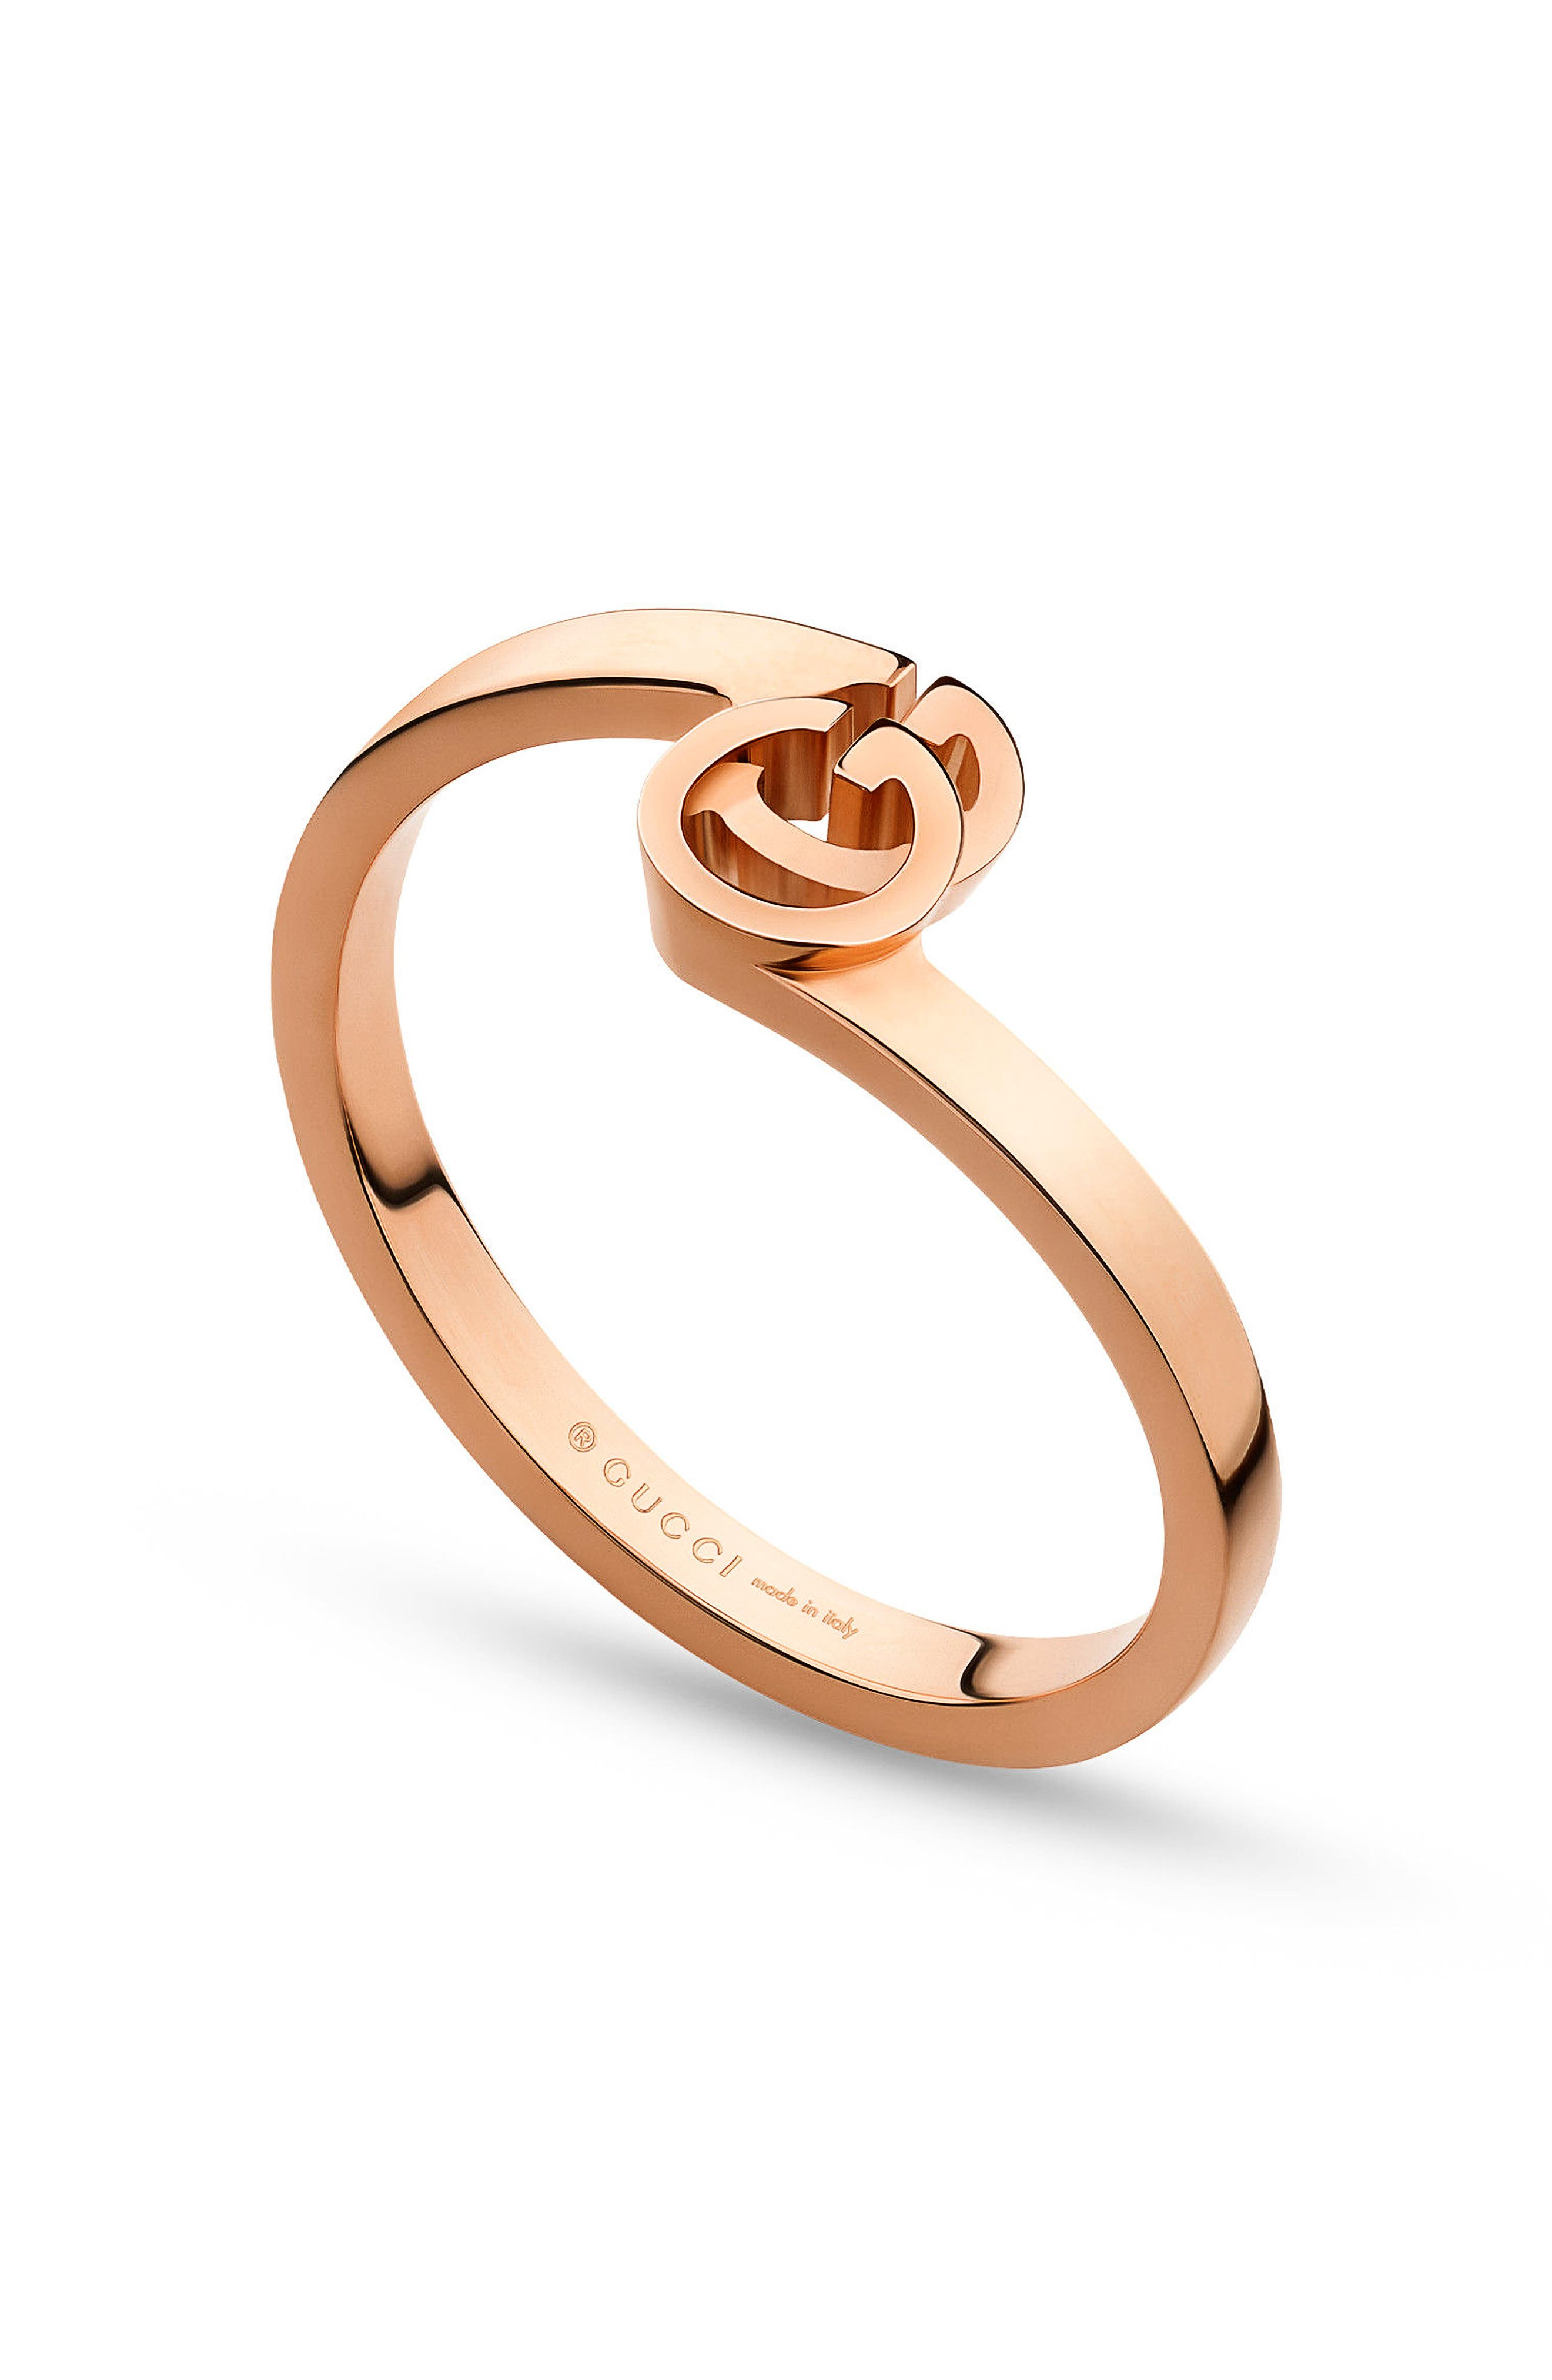 Double-G Stack Ring,                         Main,                         color, Rose Gold